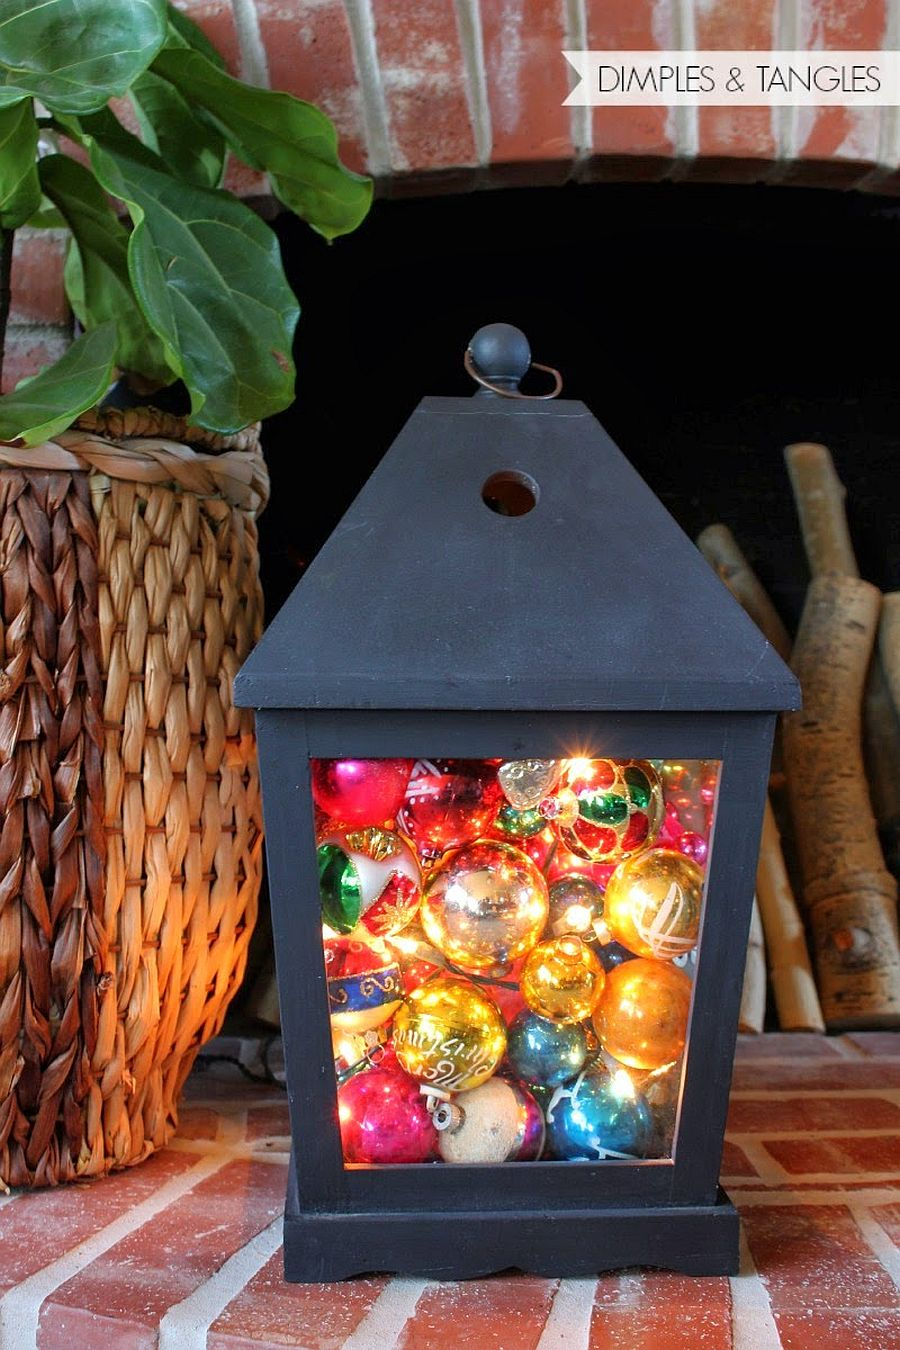 Combining lantern, string lights and Christmas ornaments in a fun and cheerful manner!